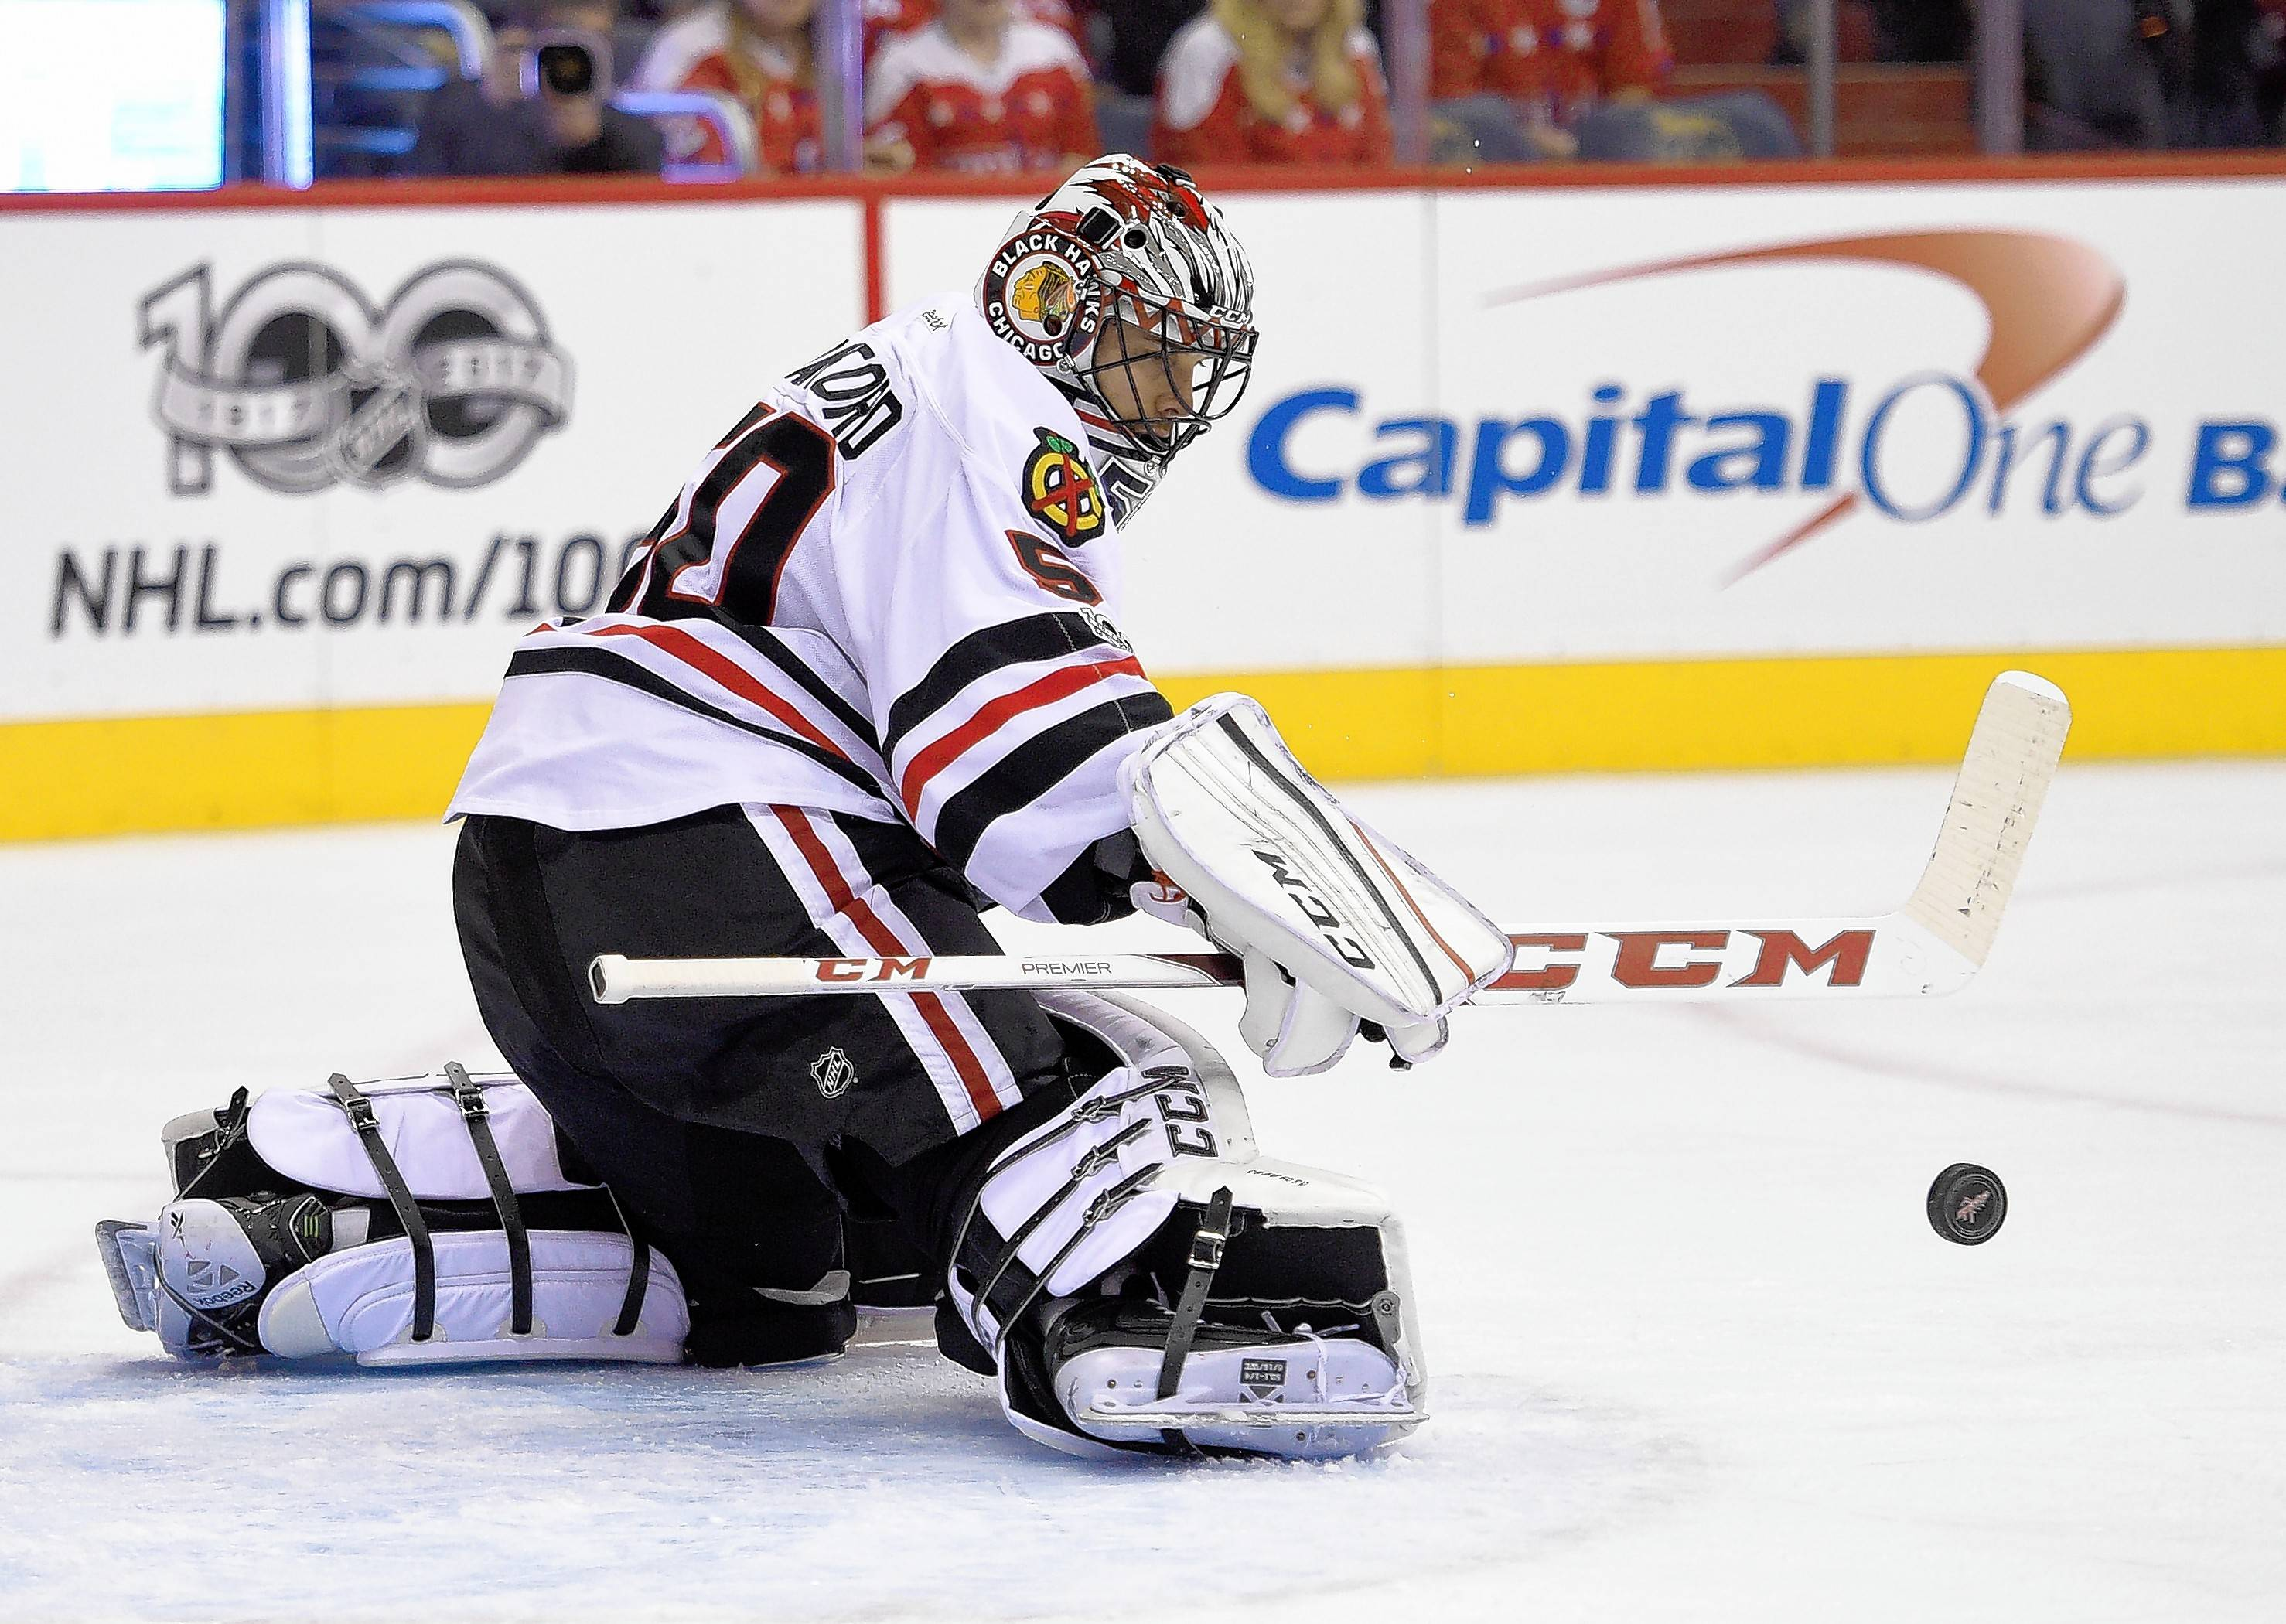 Corey Crawford is expected back in the next Thursday when the Blackhawks host Arizona. Crawford hasn't played since last December because of a concussion.